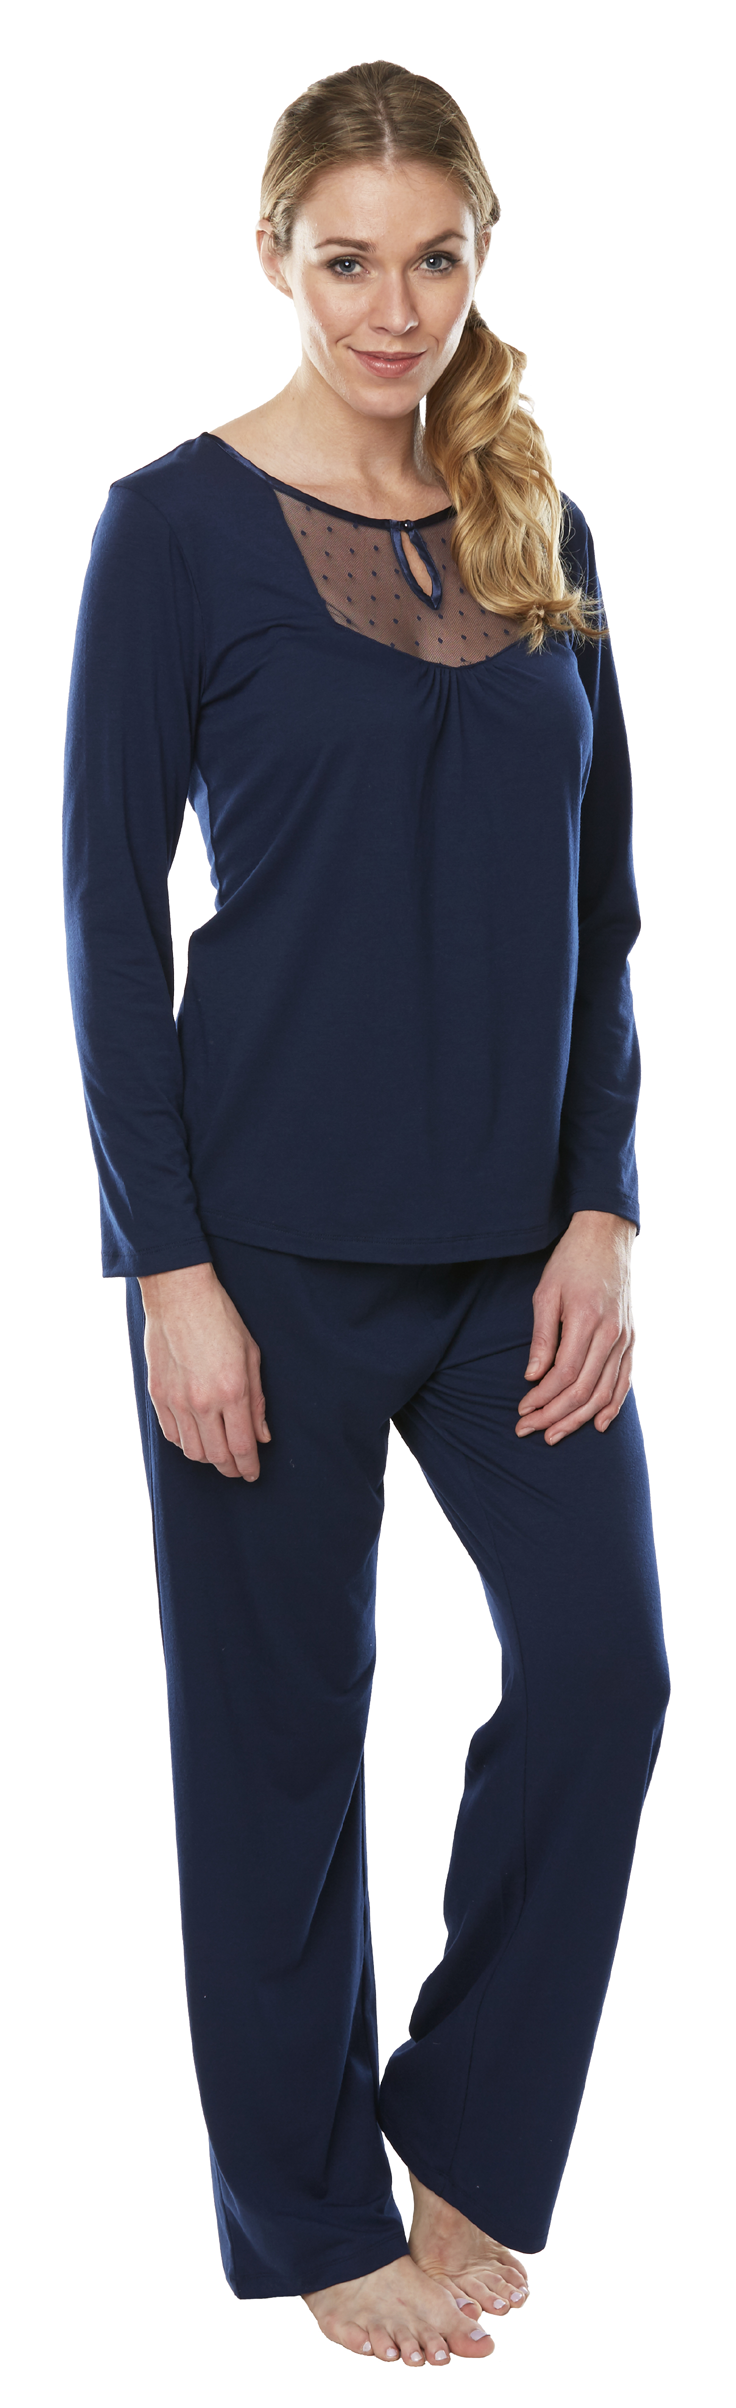 Embrace the elegance of the Dottie Long Sleeve Wicking PJ Set! This luxurious wicking sleepwear features elegant dotted mesh and a satin trimmed keyhole that will beautifully frame your shape. This wicking pajama set is crafted from super-soft fabric with smart moisture-management technology spun into the very thread of the material.